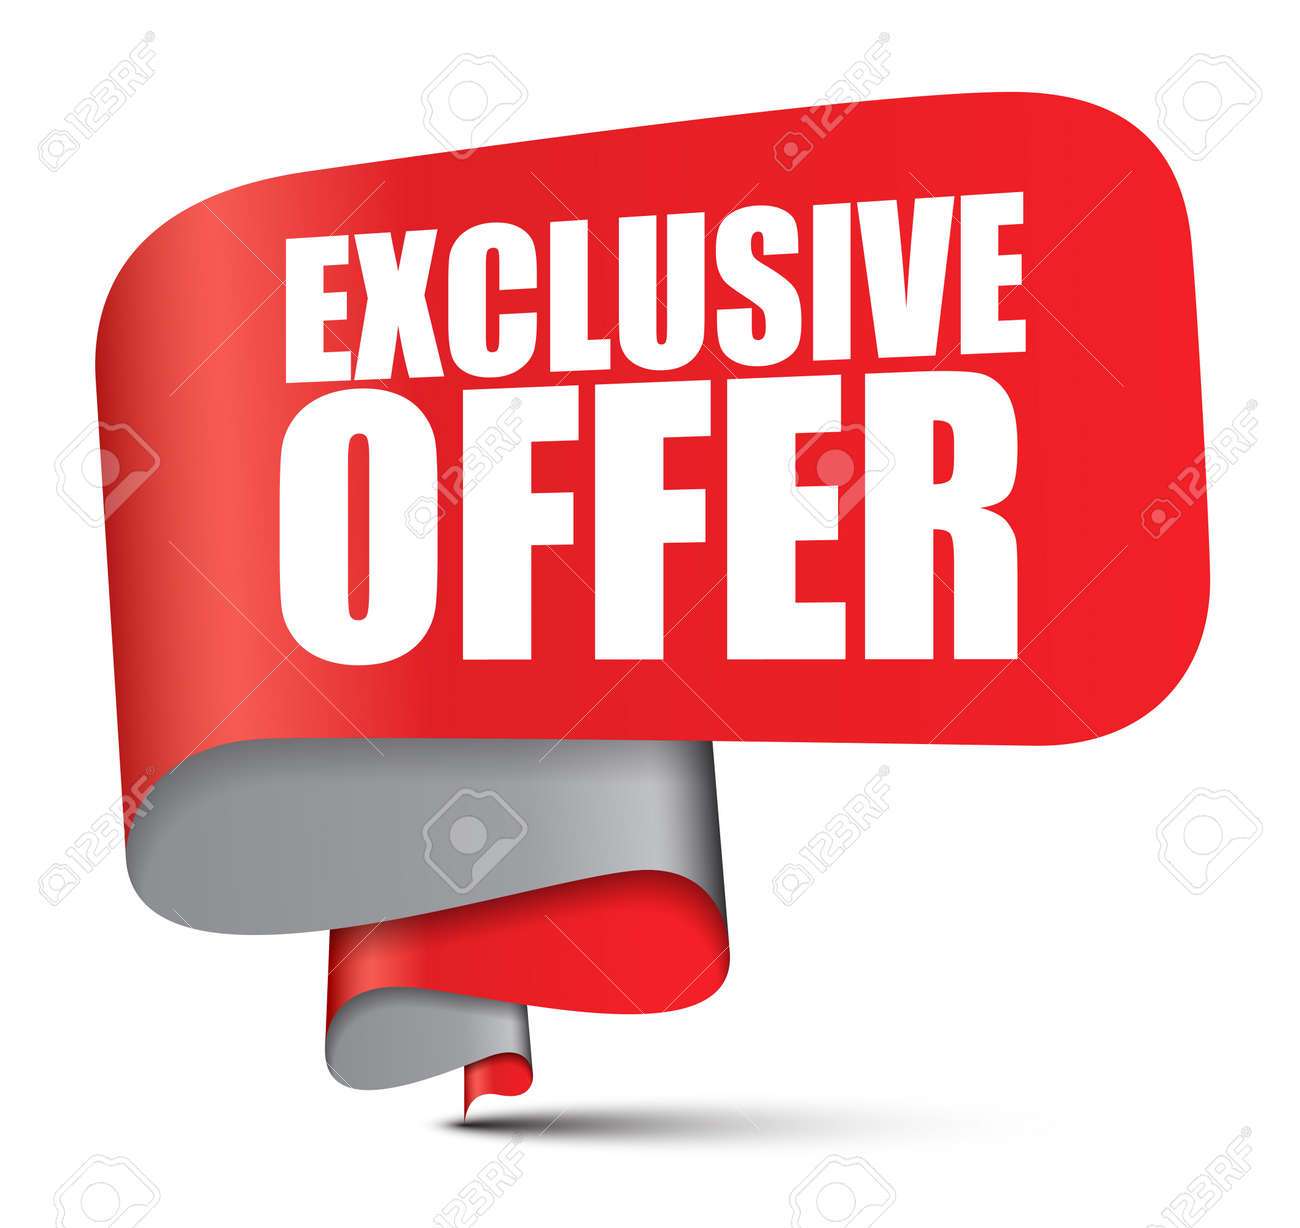 Image result for exclusive offer banner